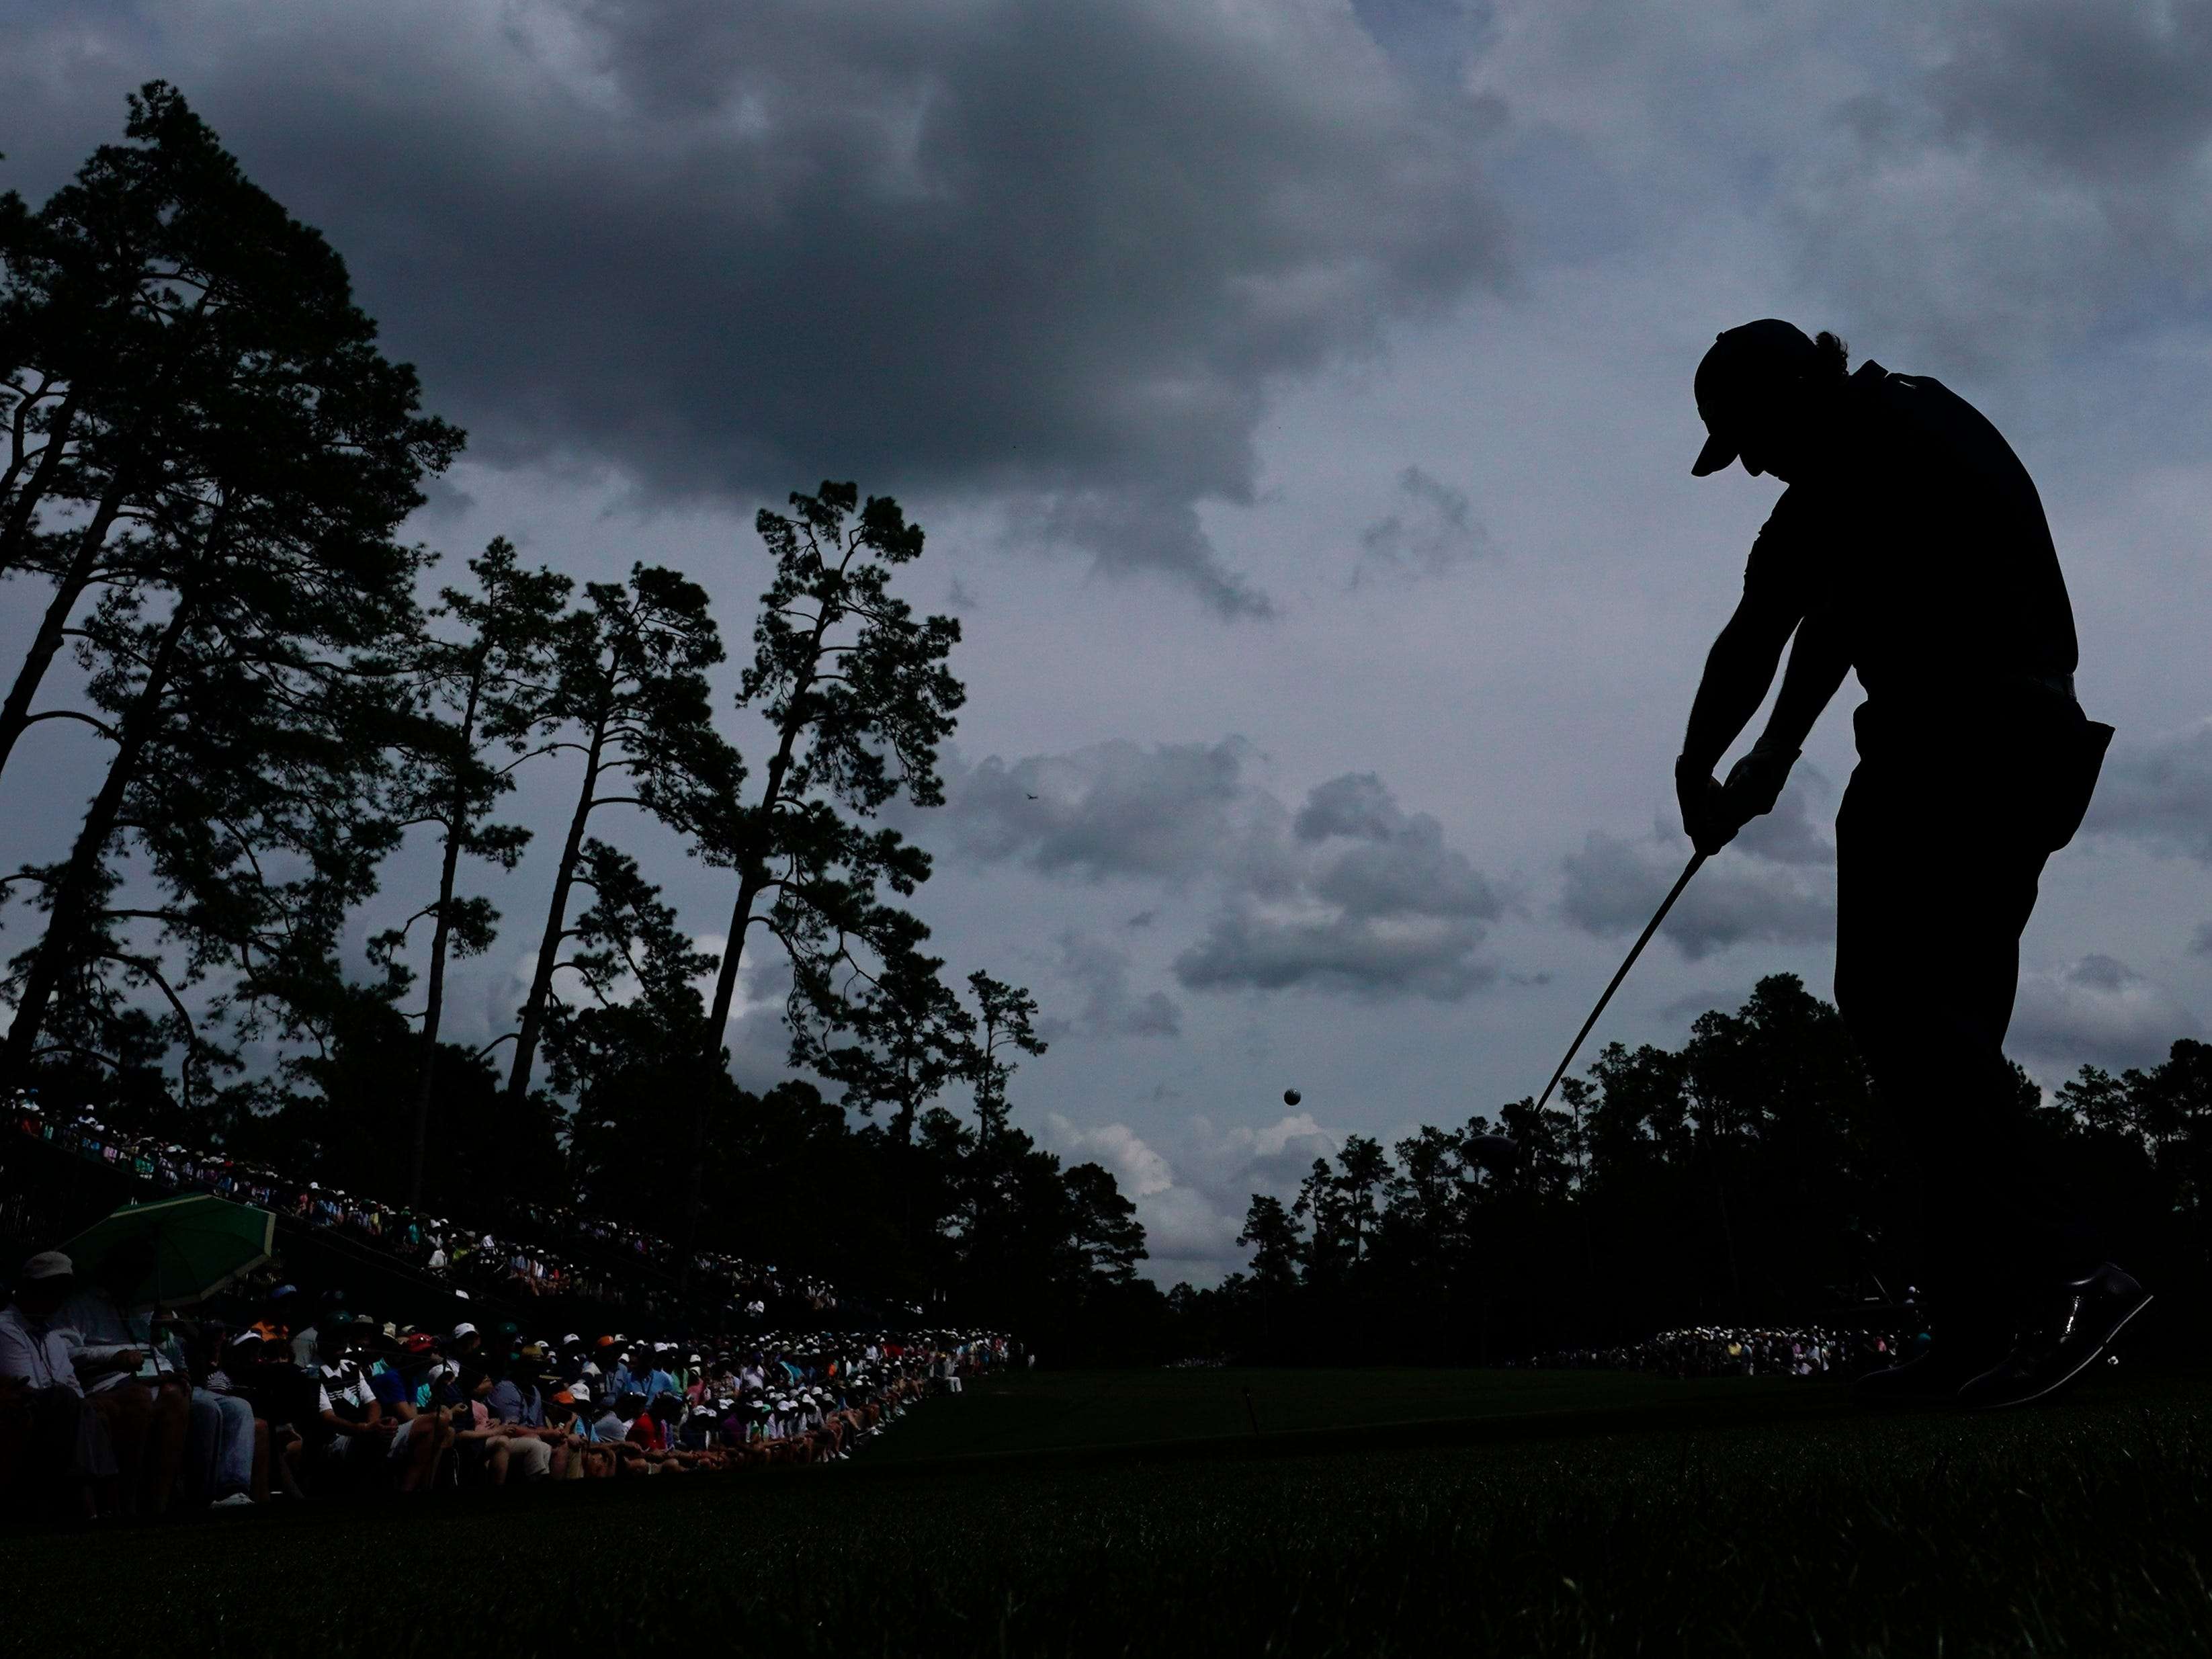 Phil Mickelson hits a drive on the 14th hole during the second round for the Masters golf tournament Friday, April 12, 2019, in Augusta, Ga.